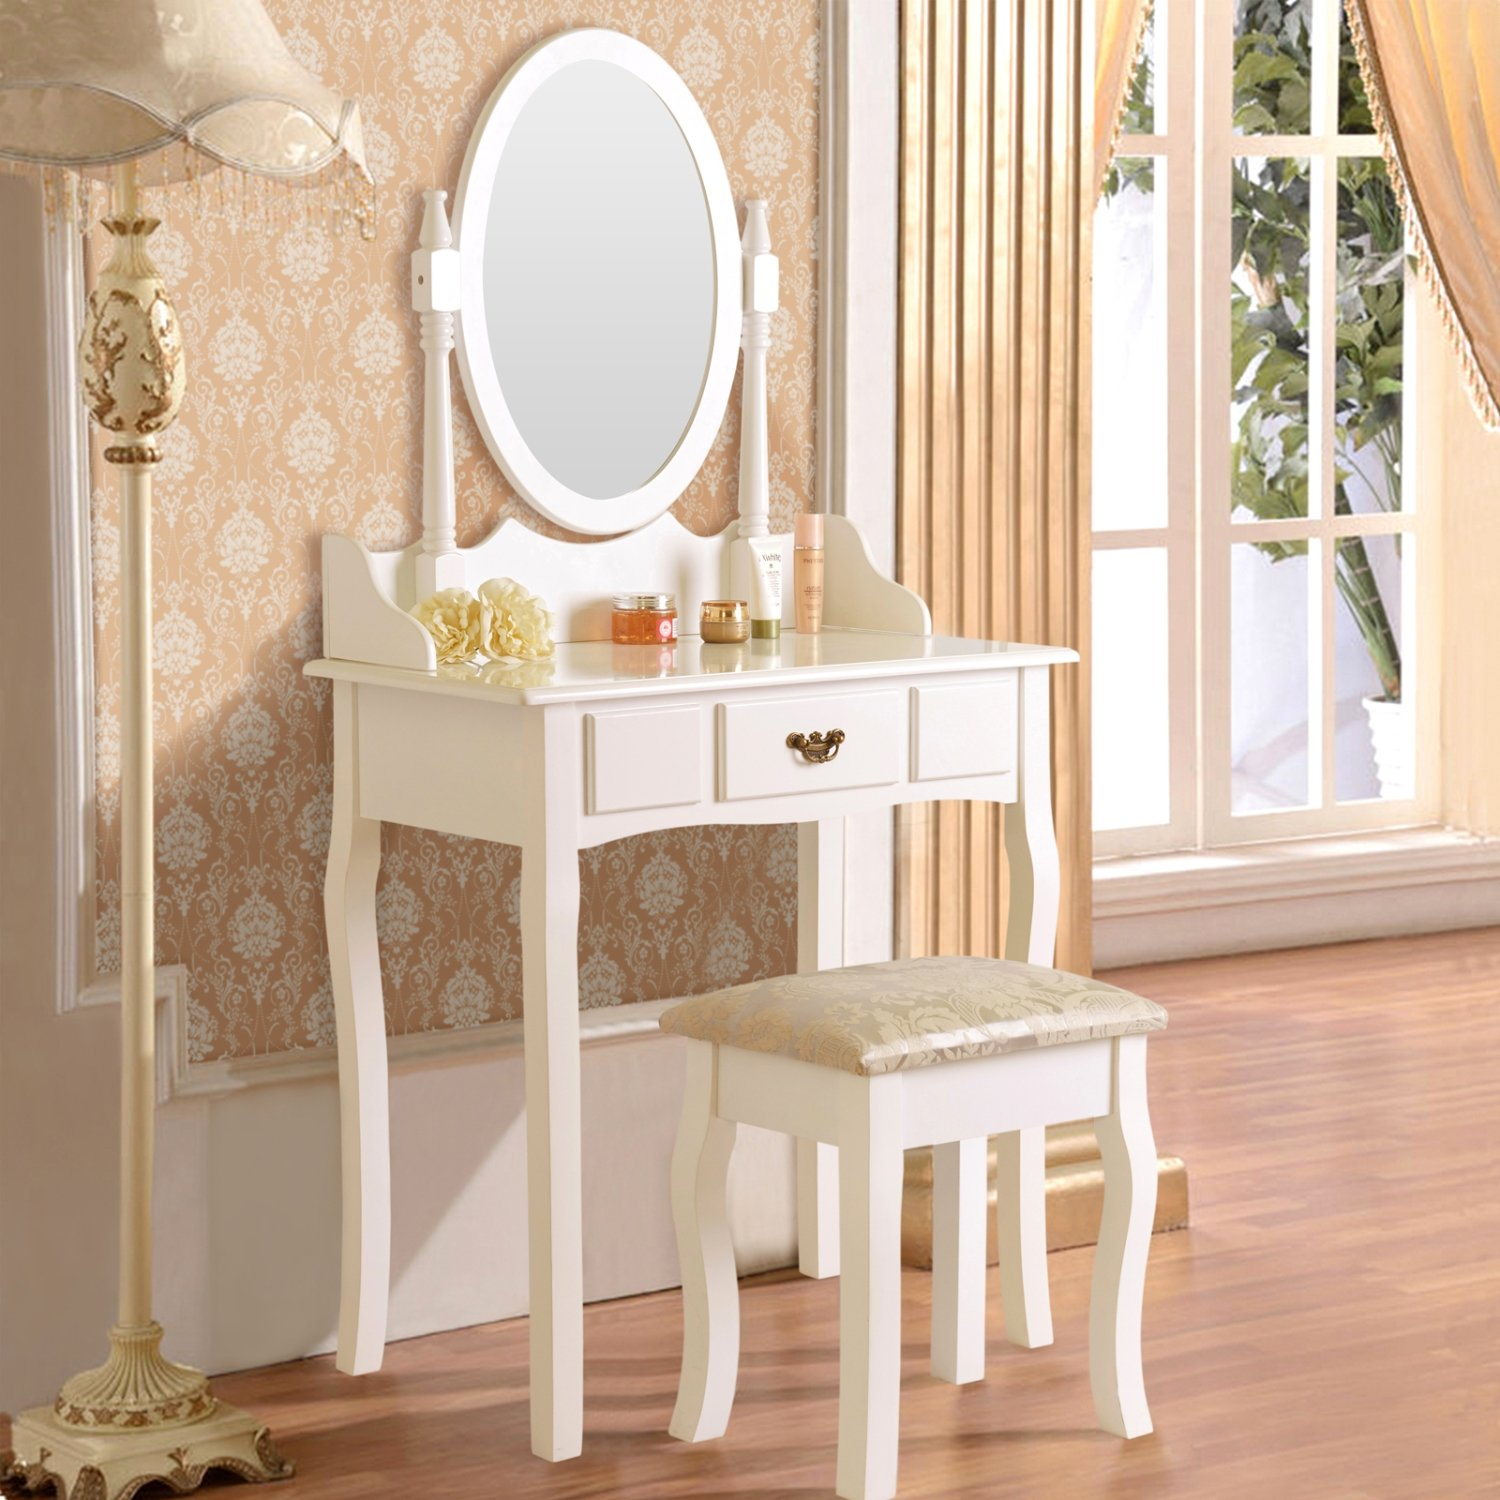 dressing vintage today white tri free table stool garden drawers drawer costway folding set vanity bathroom product overstock shipping with makeup home